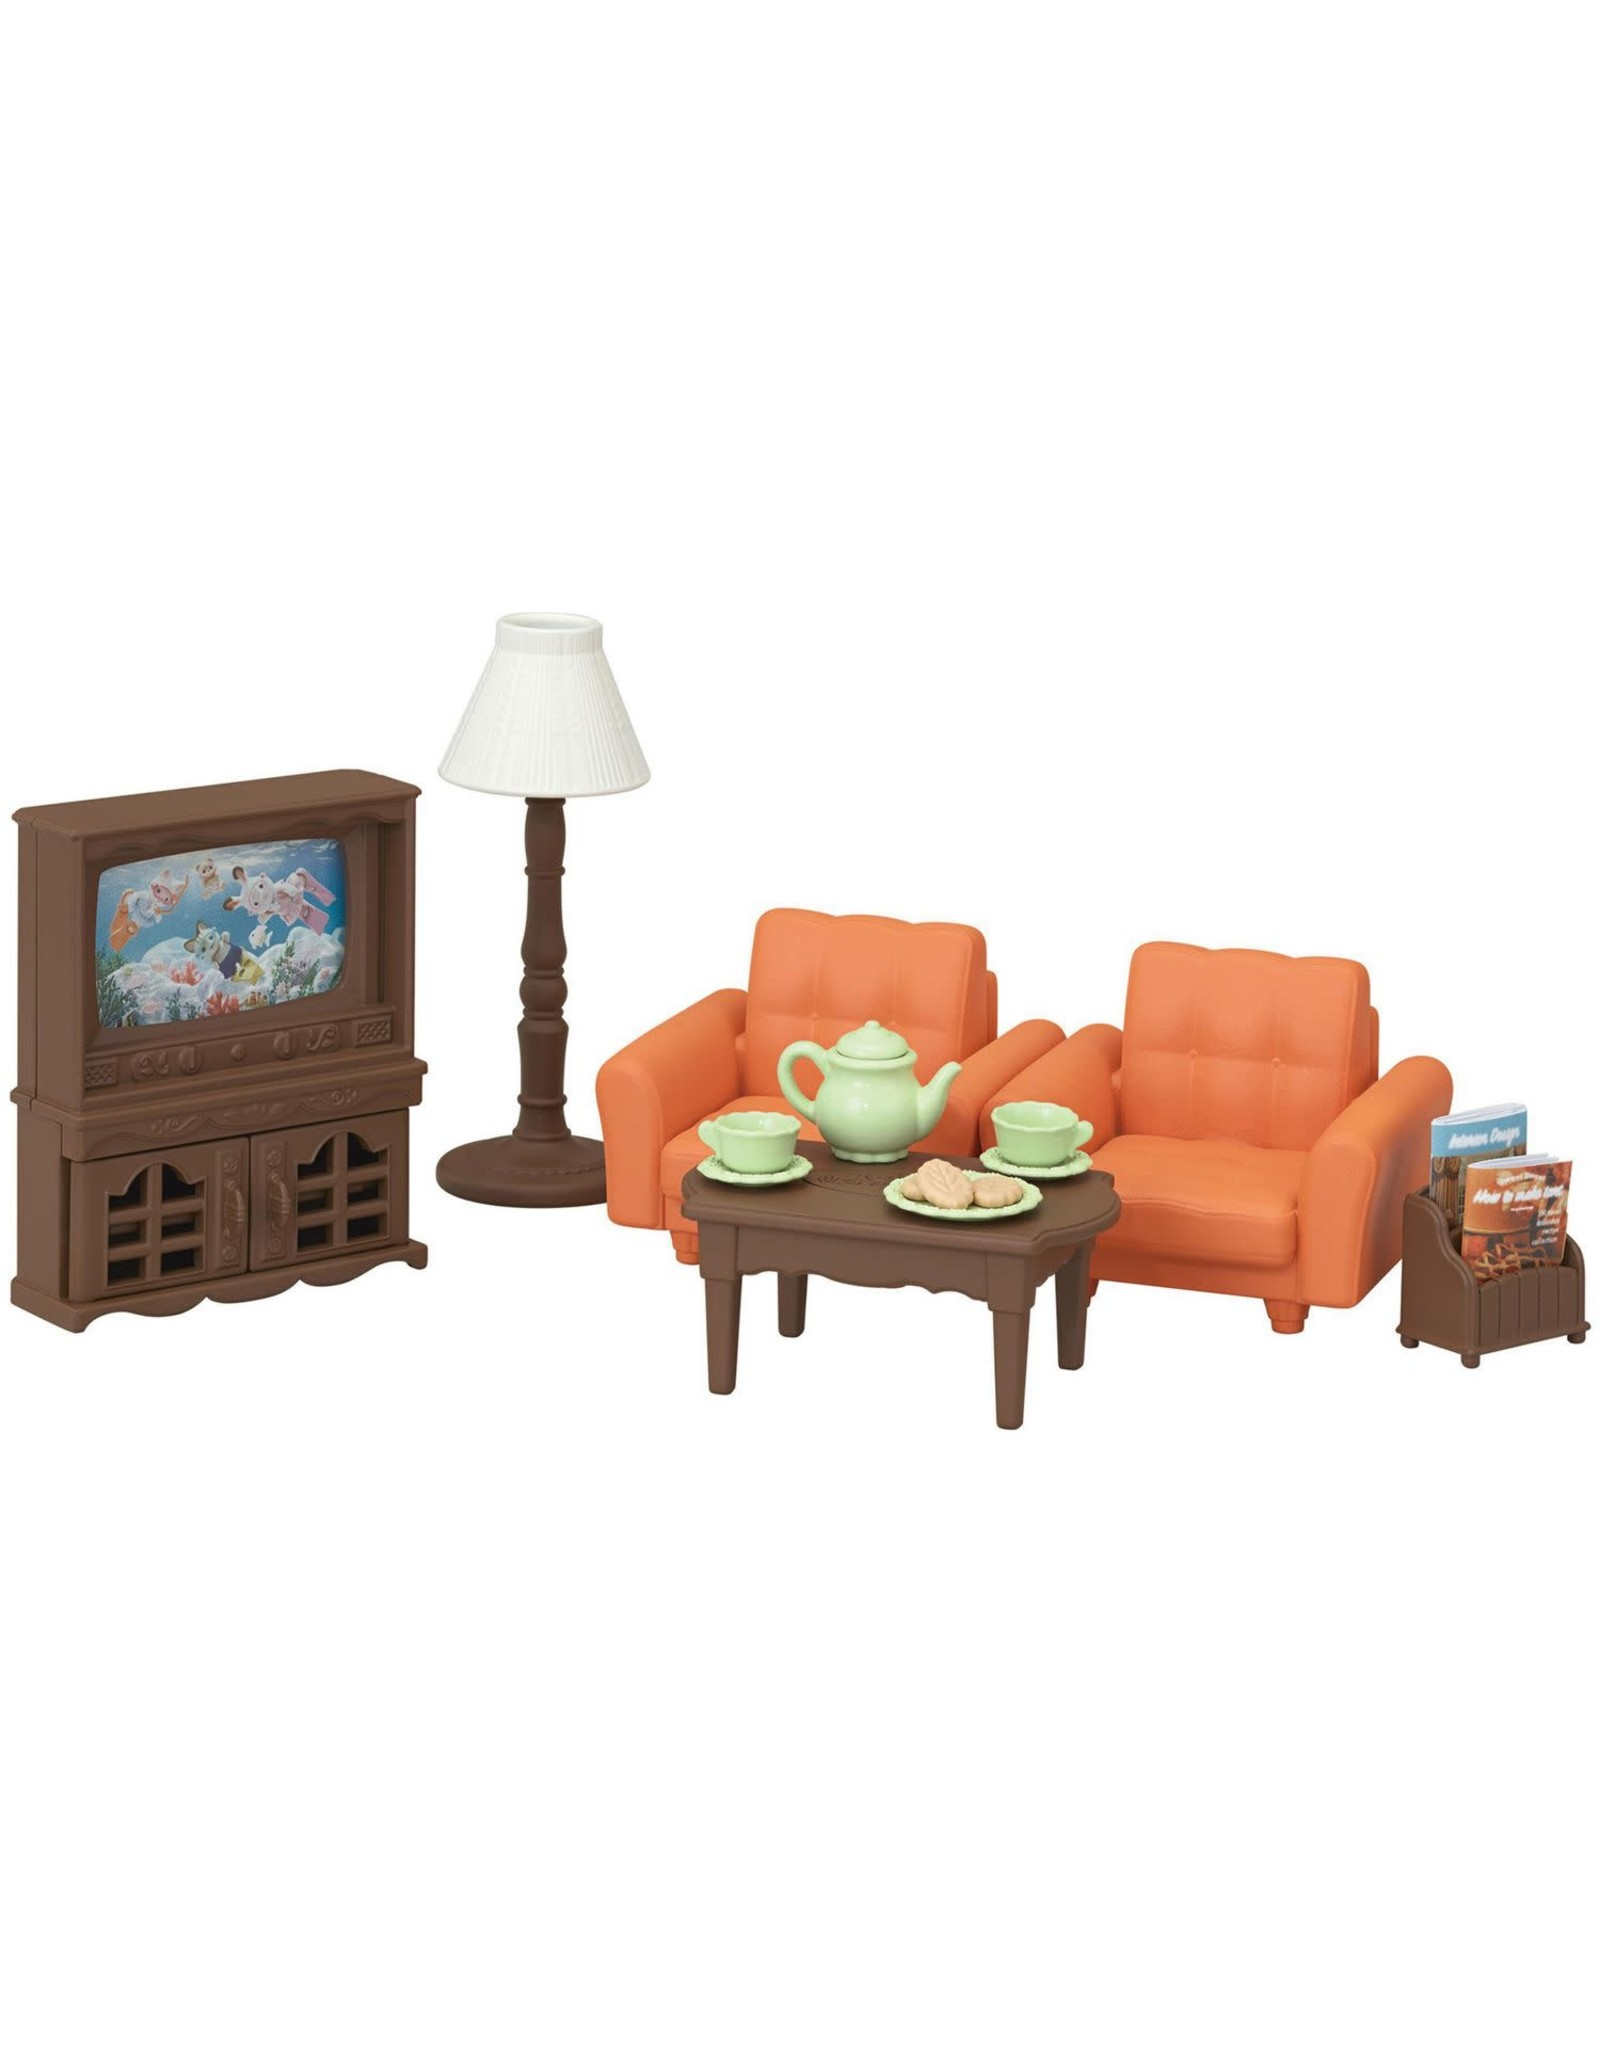 Calico Critters Calico Critters Lounging Living Room